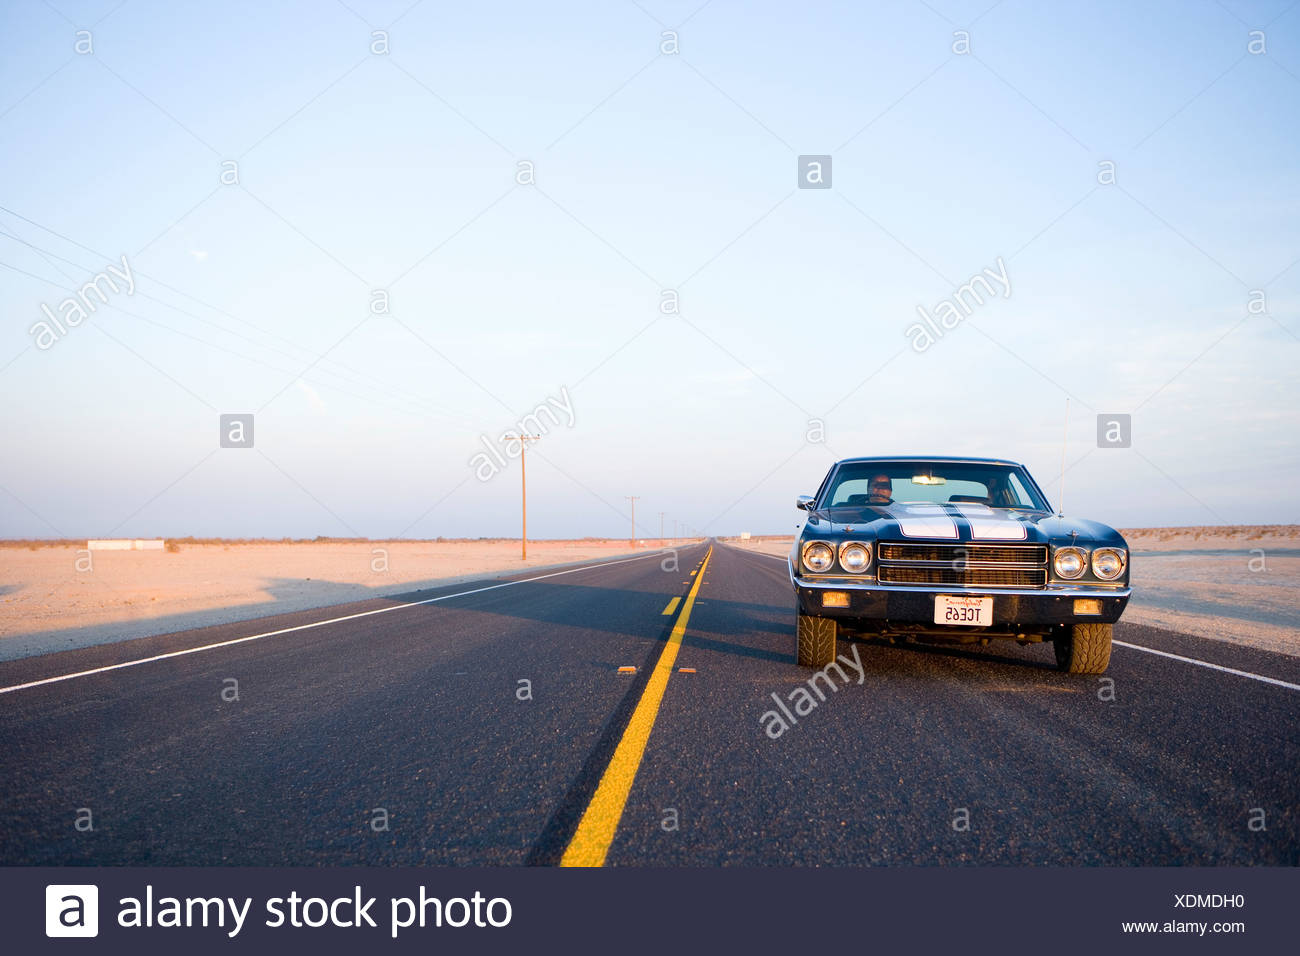 Classic car on freeway in desert, low angle view - Stock Image